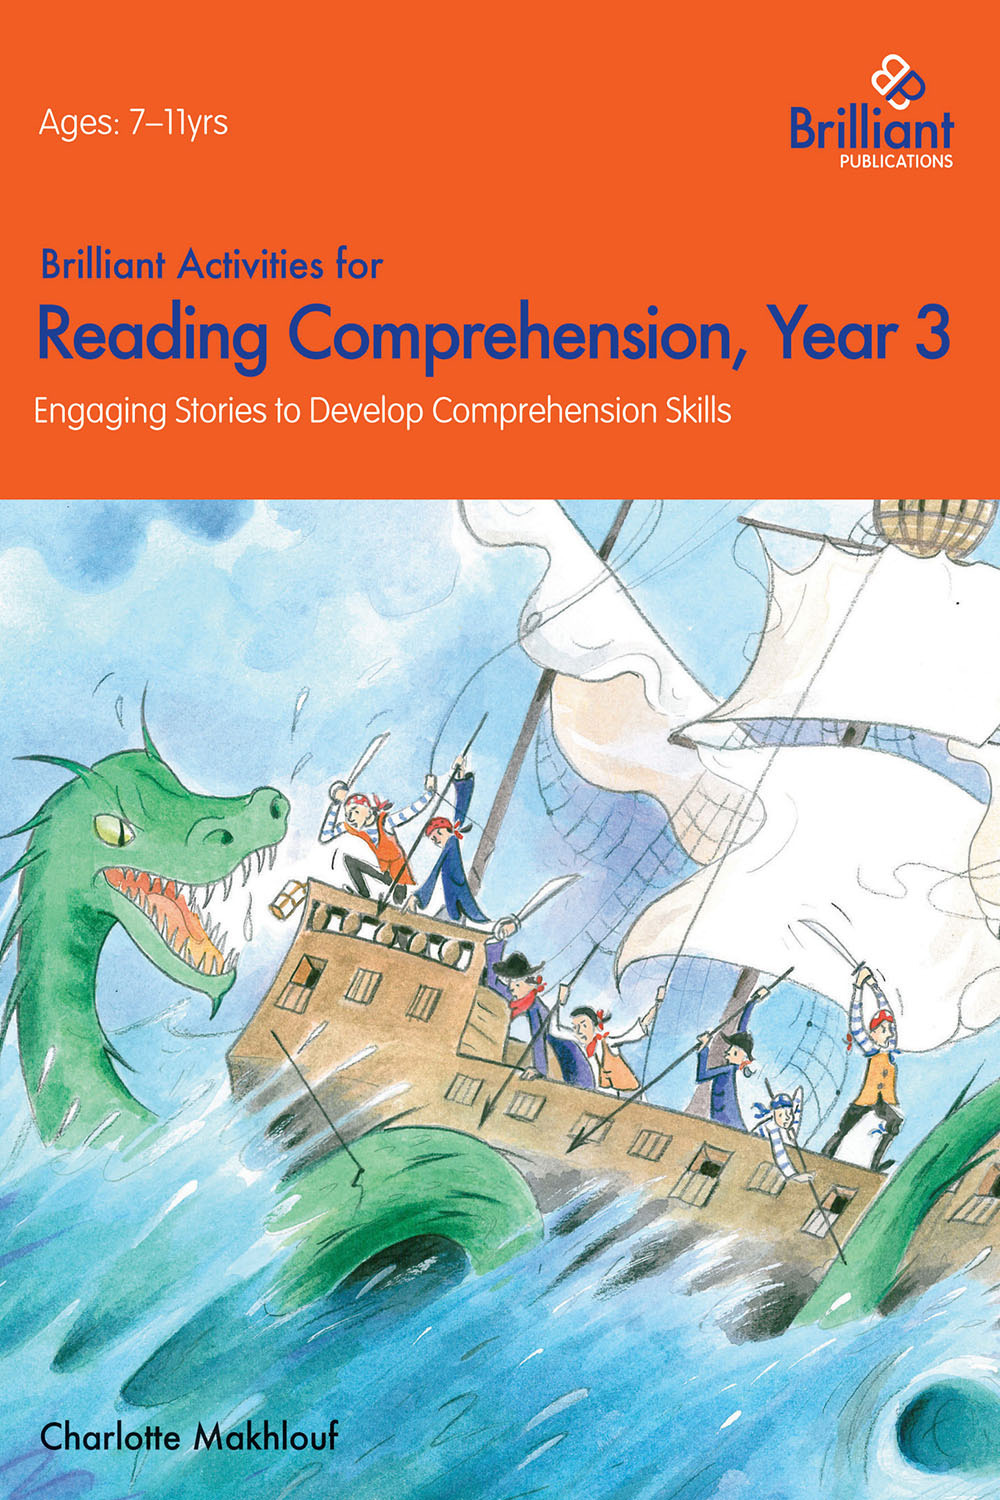 Makhlouf, Charlotte - Brilliant Activities for Reading Comprehension Year 3, ebook